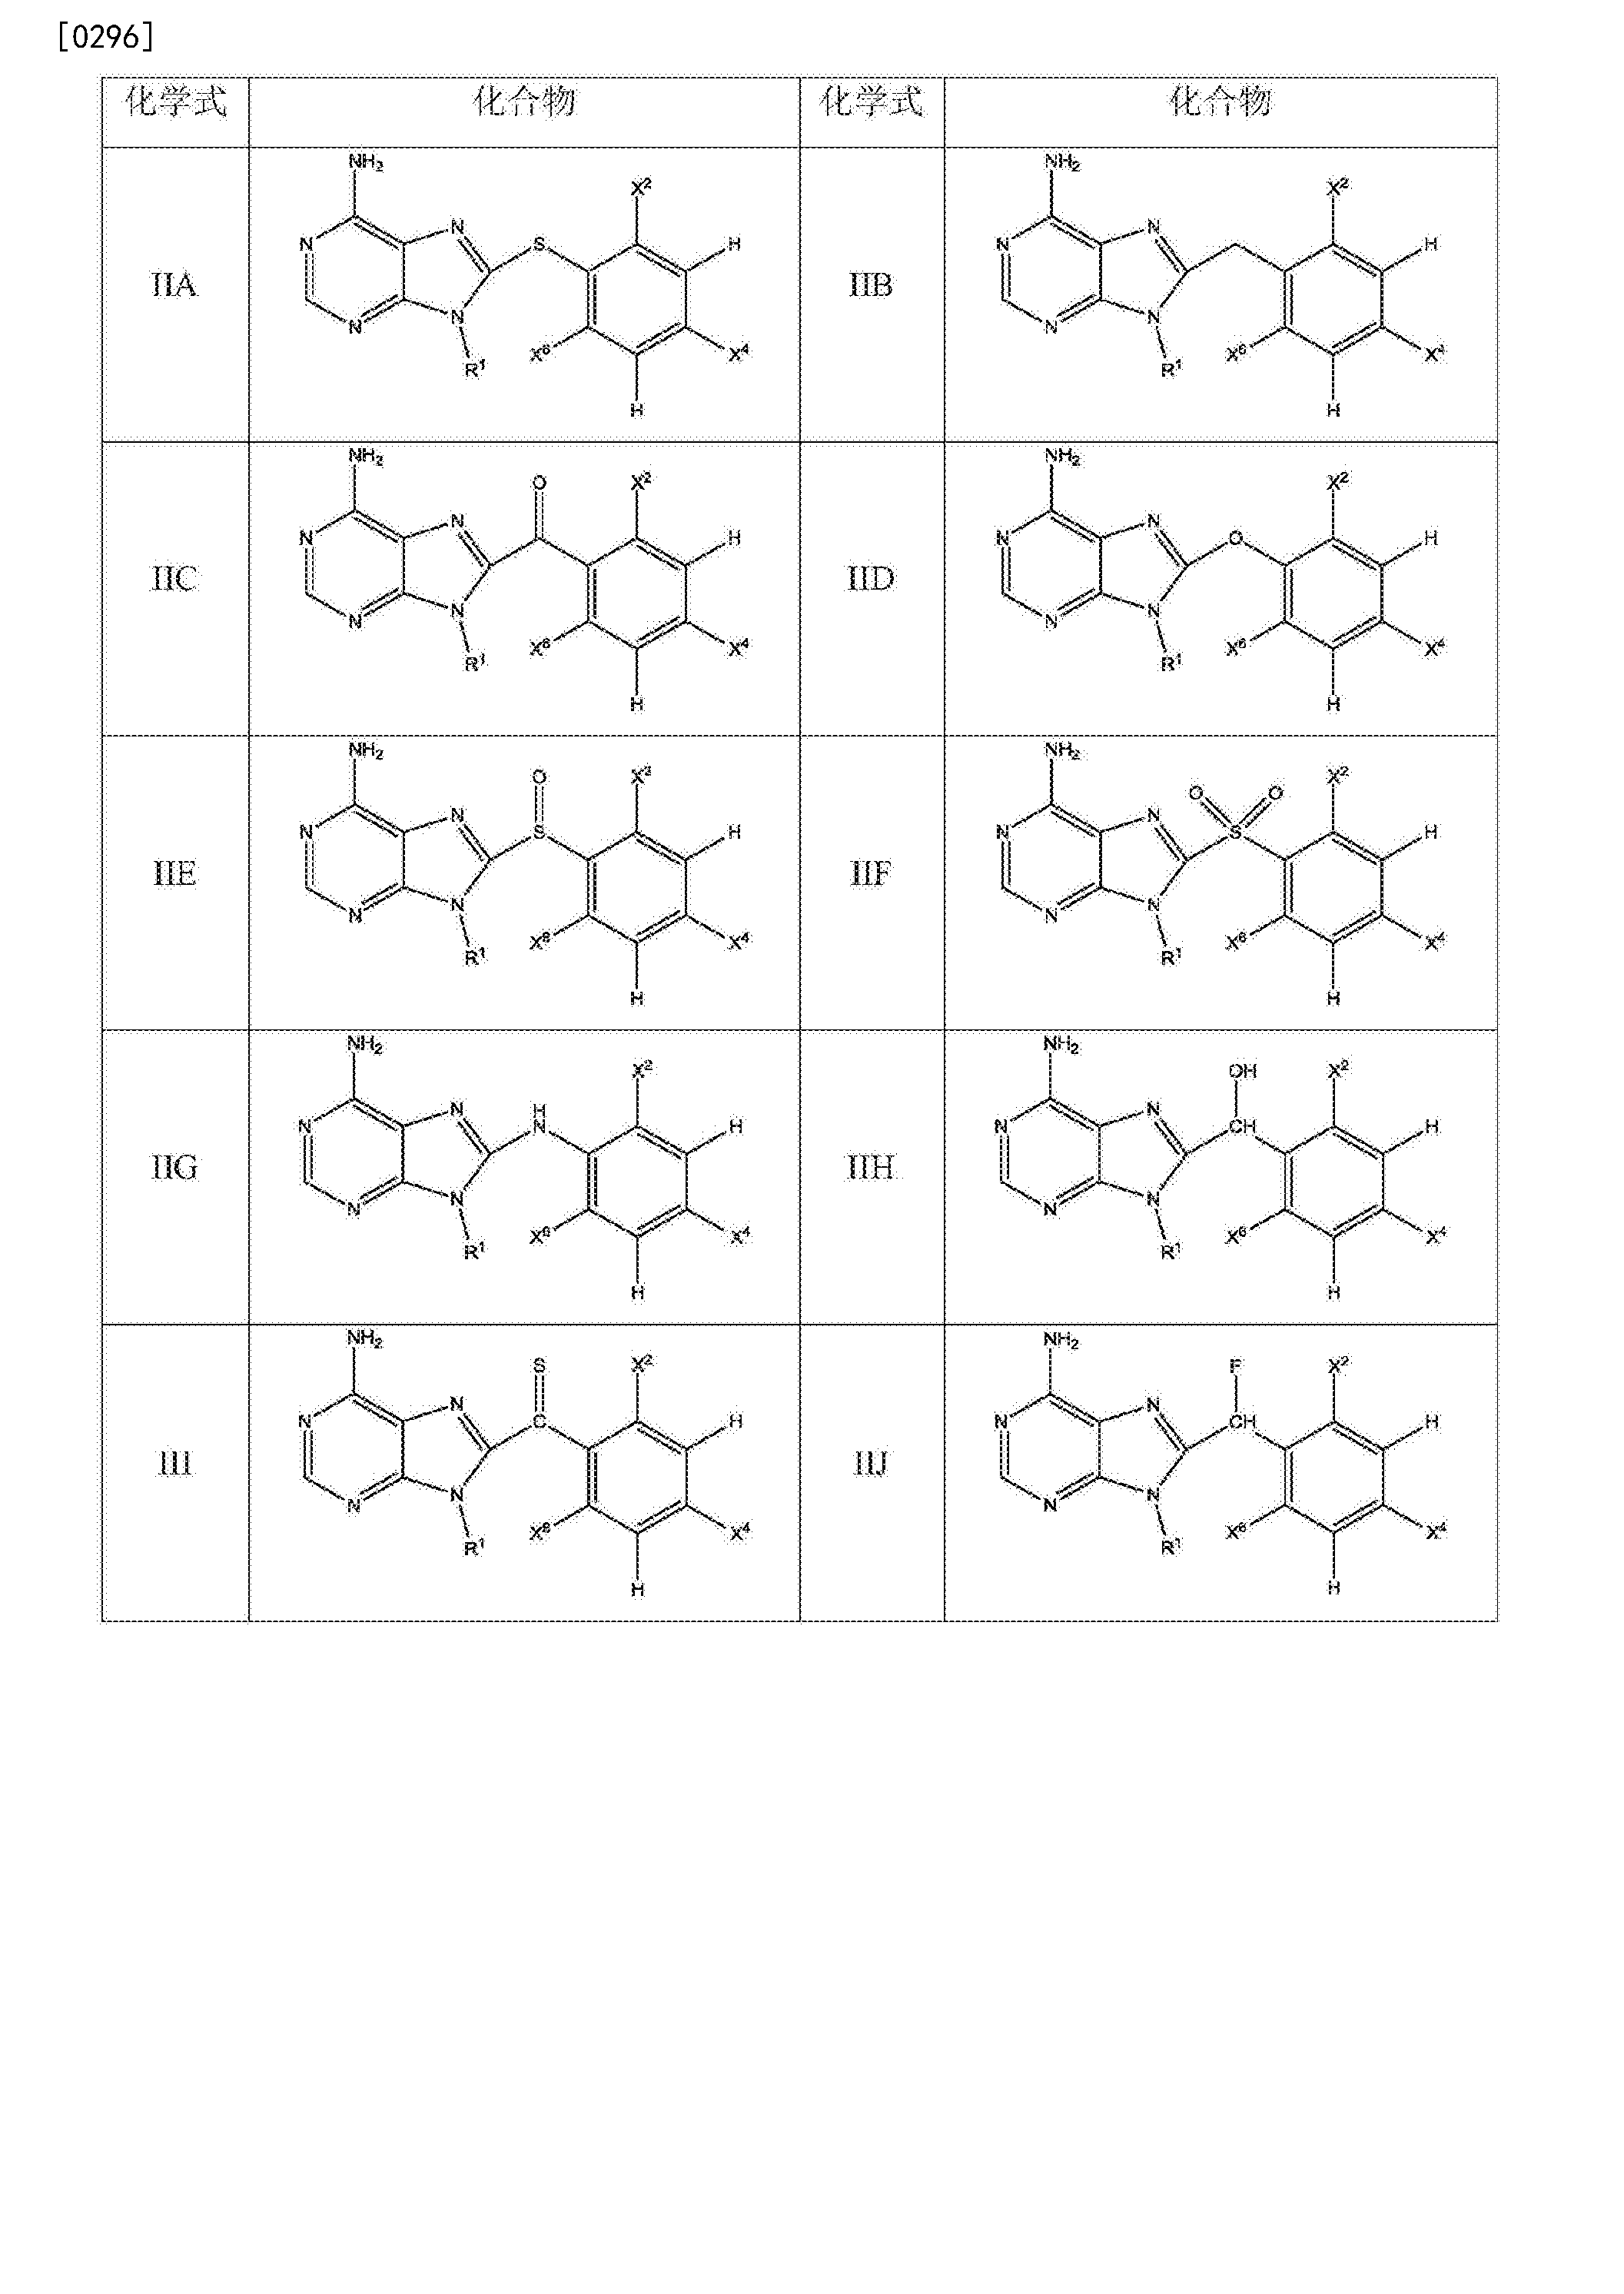 CN105899503A - Selective GRP94 inhibitors and uses thereof - Google